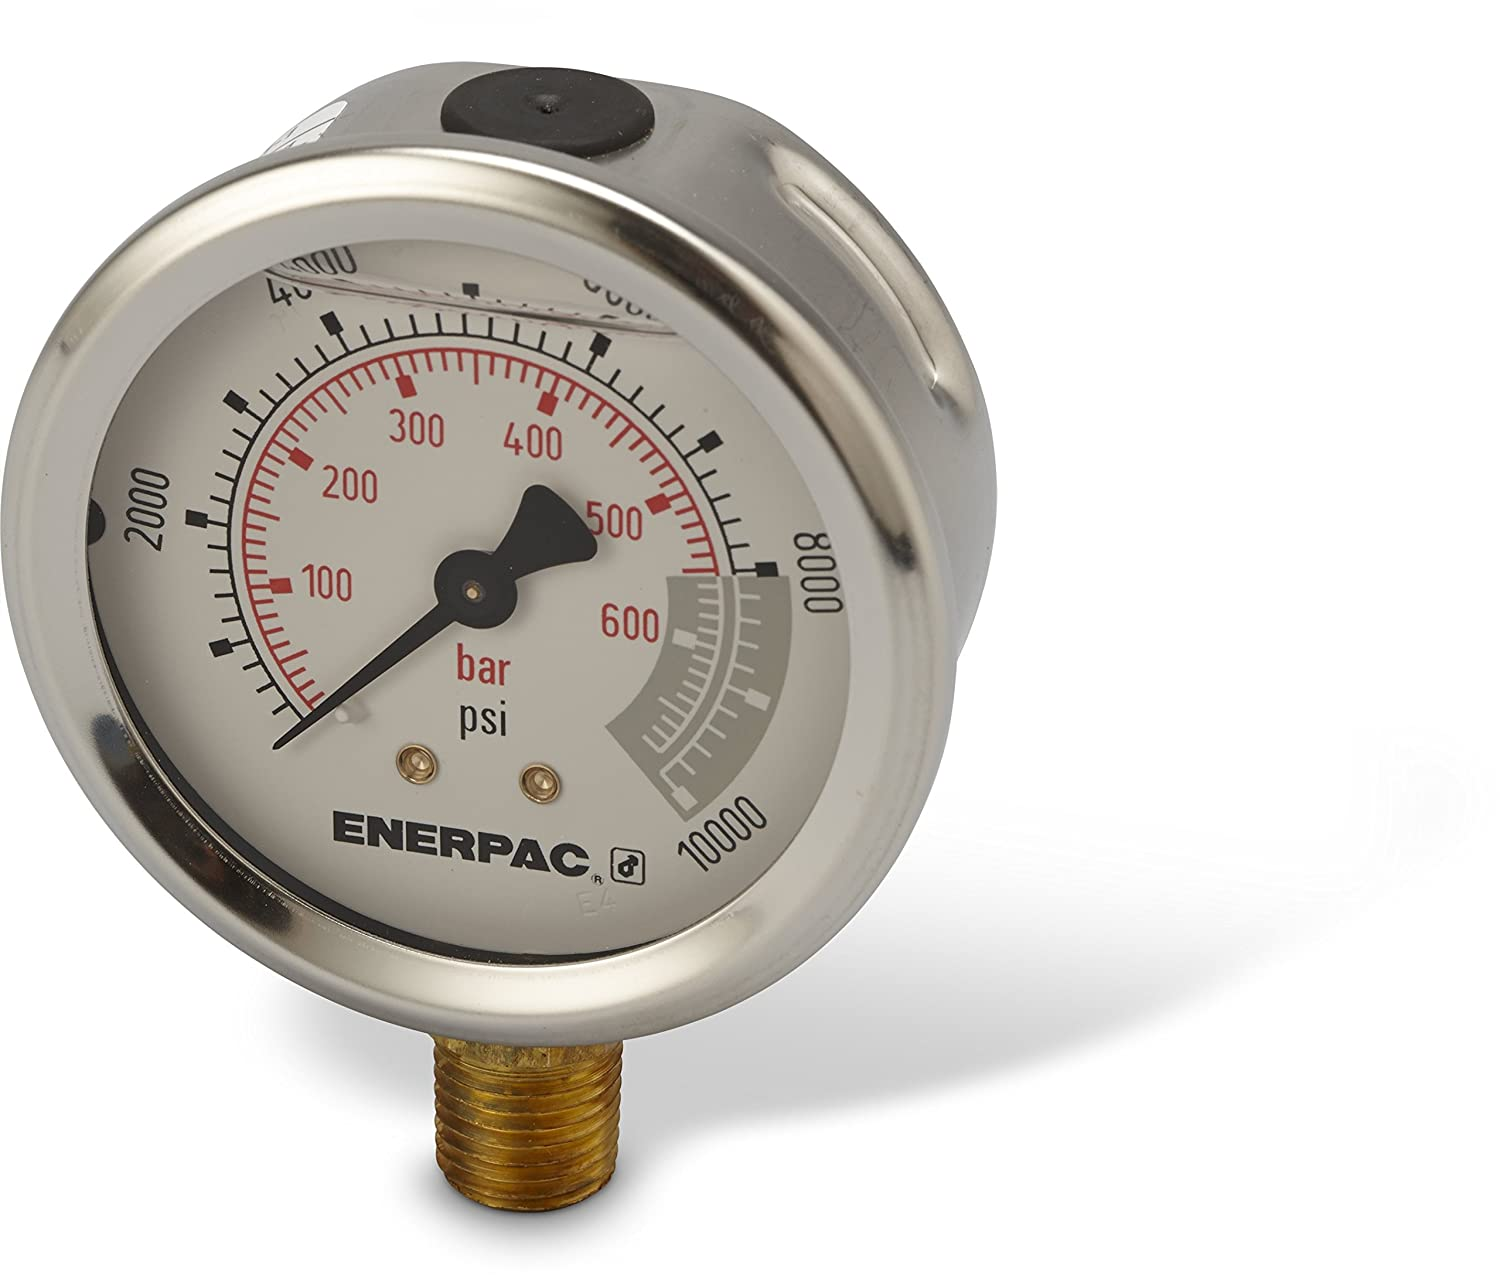 Enerpac G2535L Hydraulic Pressure Gauge with Dual 0 to 10,000 PSI and 0 to 700 Bar Range, 2-1/2